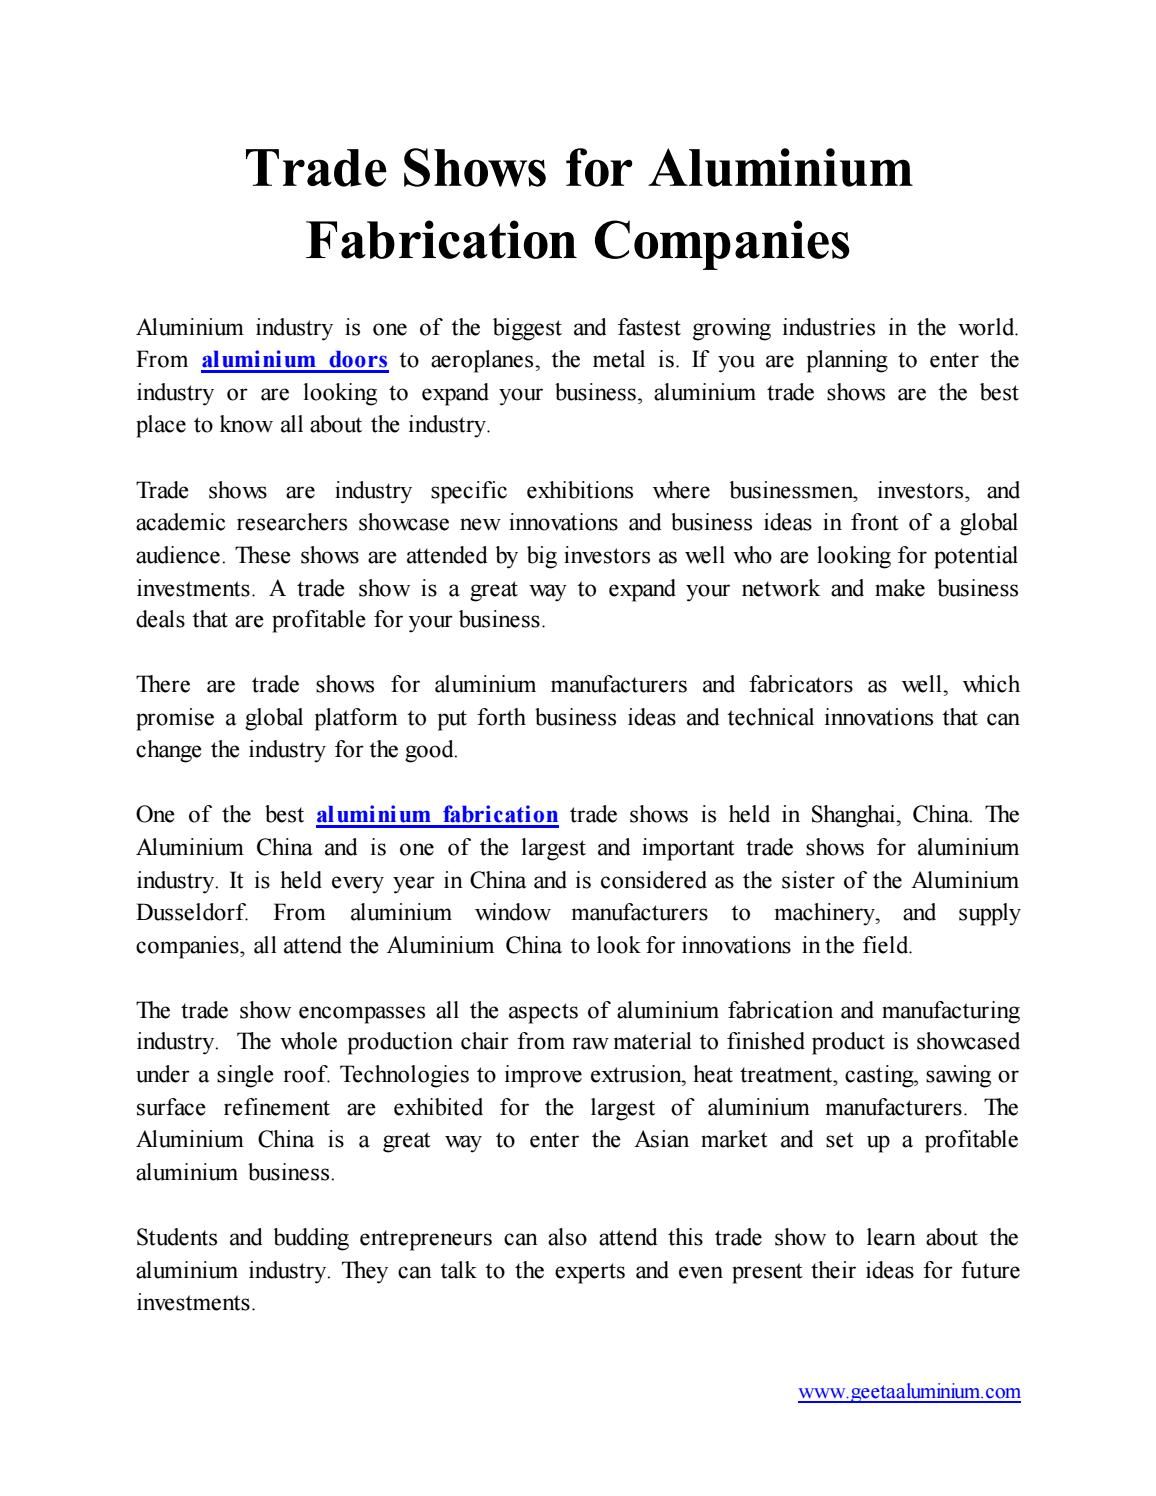 Trade Shows for Aluminium Fabrication Companies by